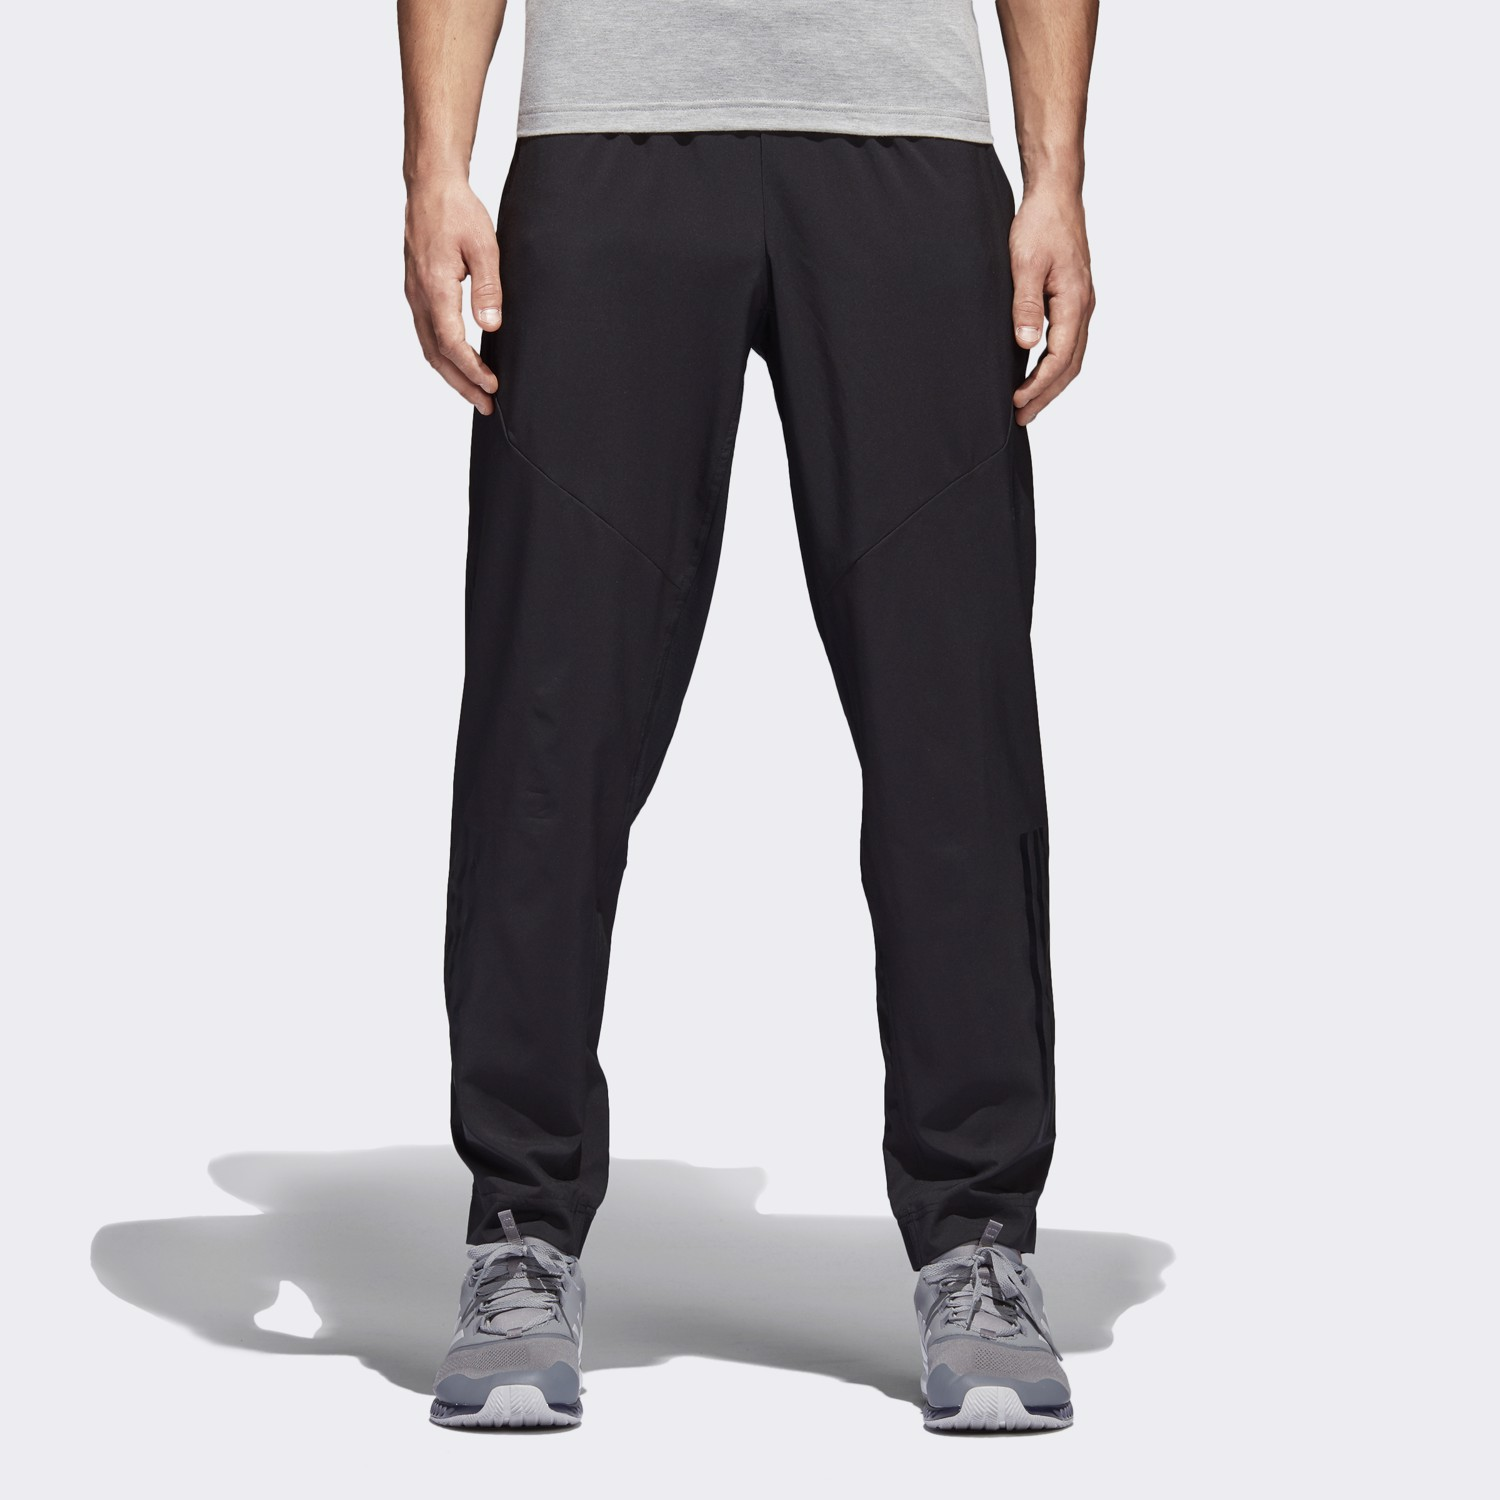 adidas Climacool Workout Pants - Black